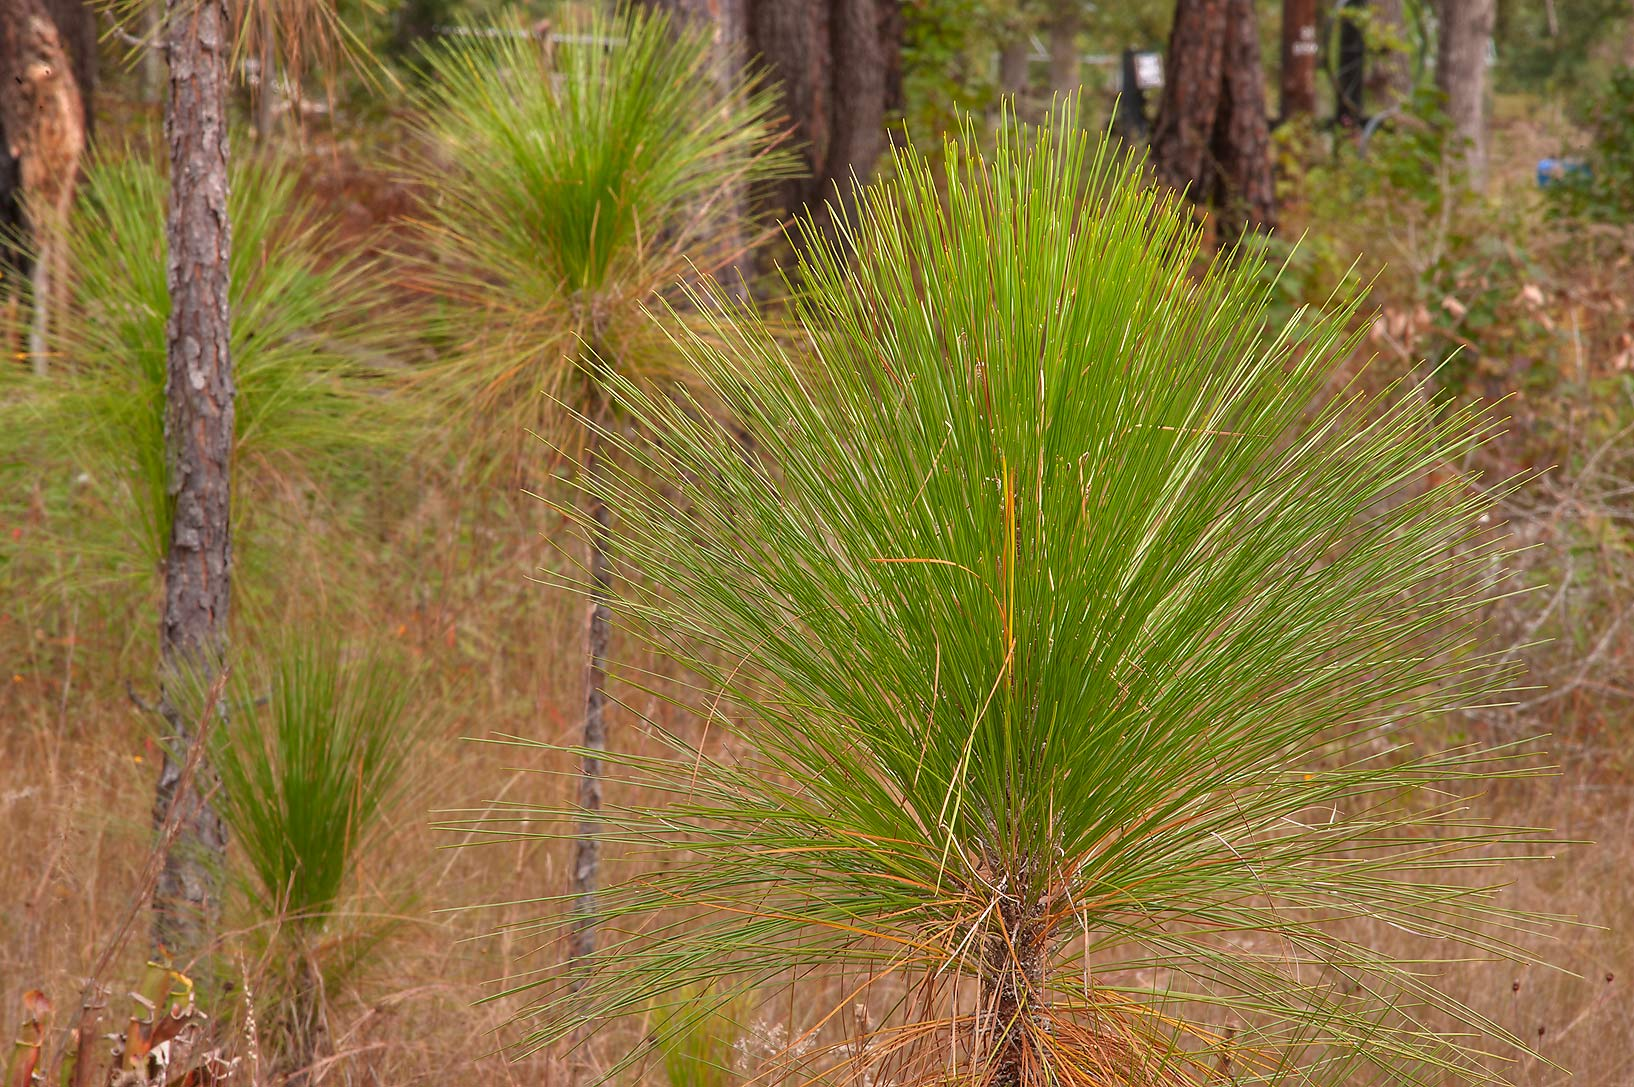 Grass stage seedlings of Longleaf Pine (Pinus...Native Plant Preserve. Warren, Texas